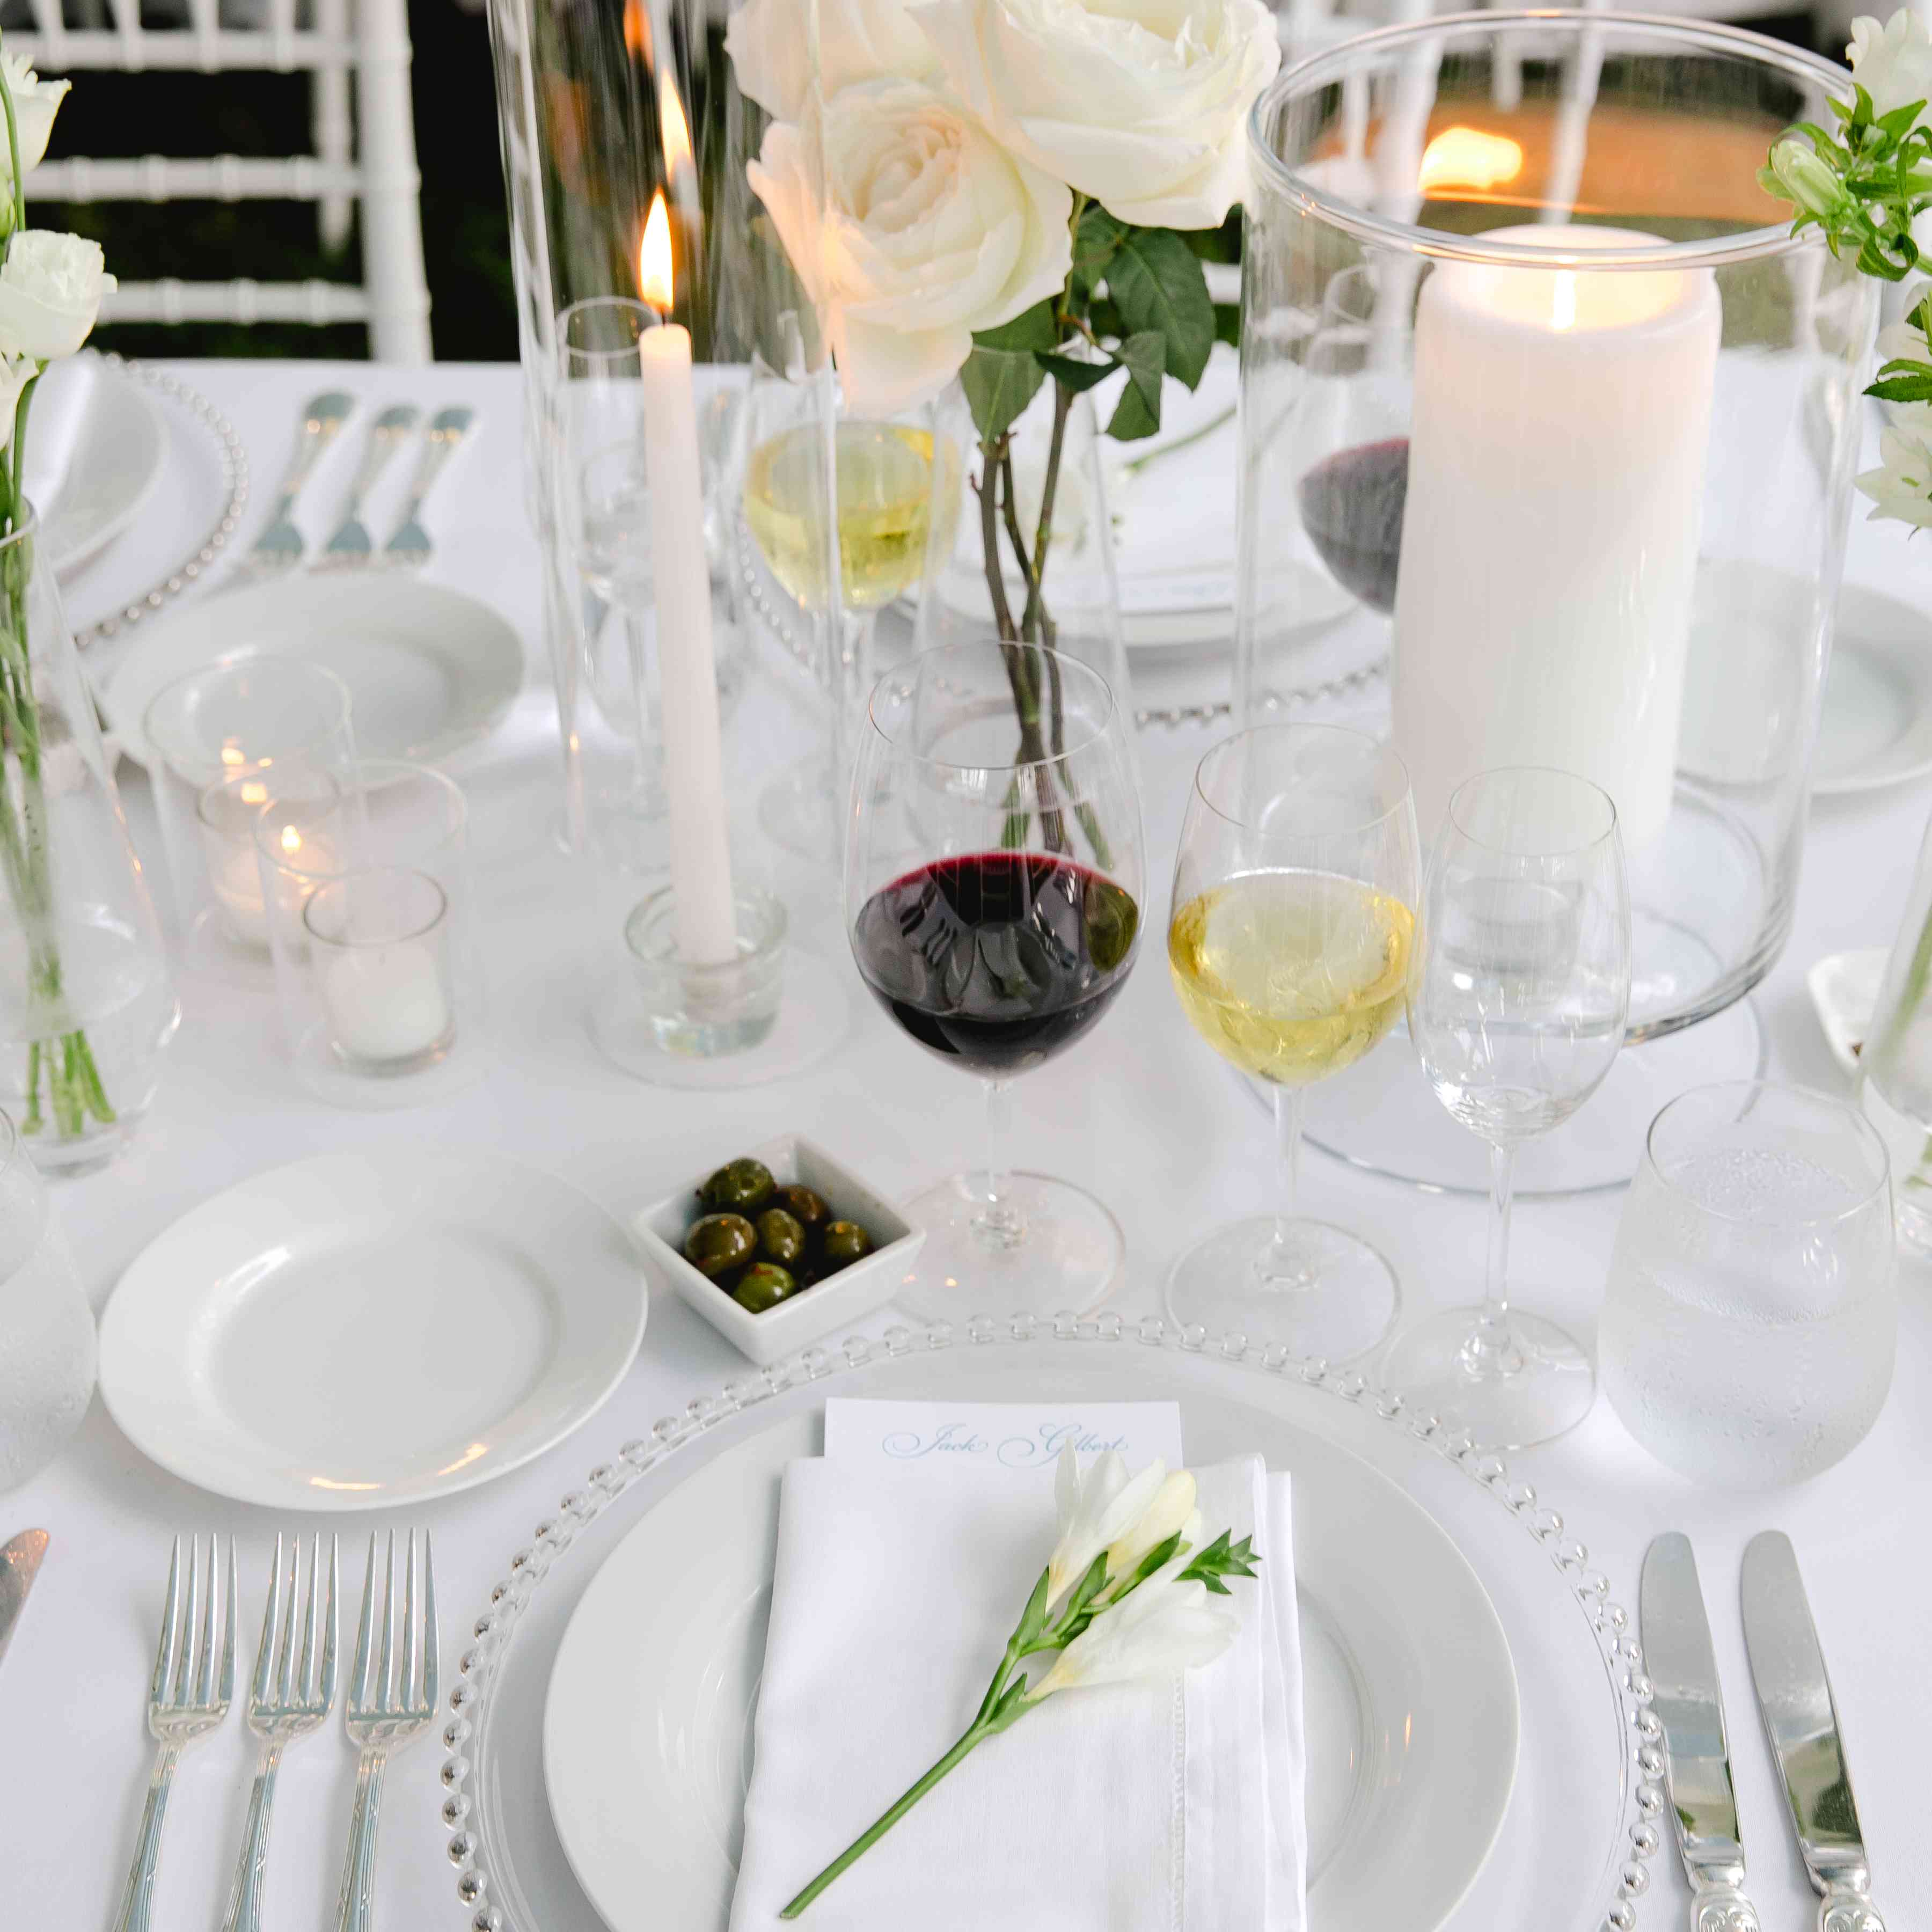 all white place setting